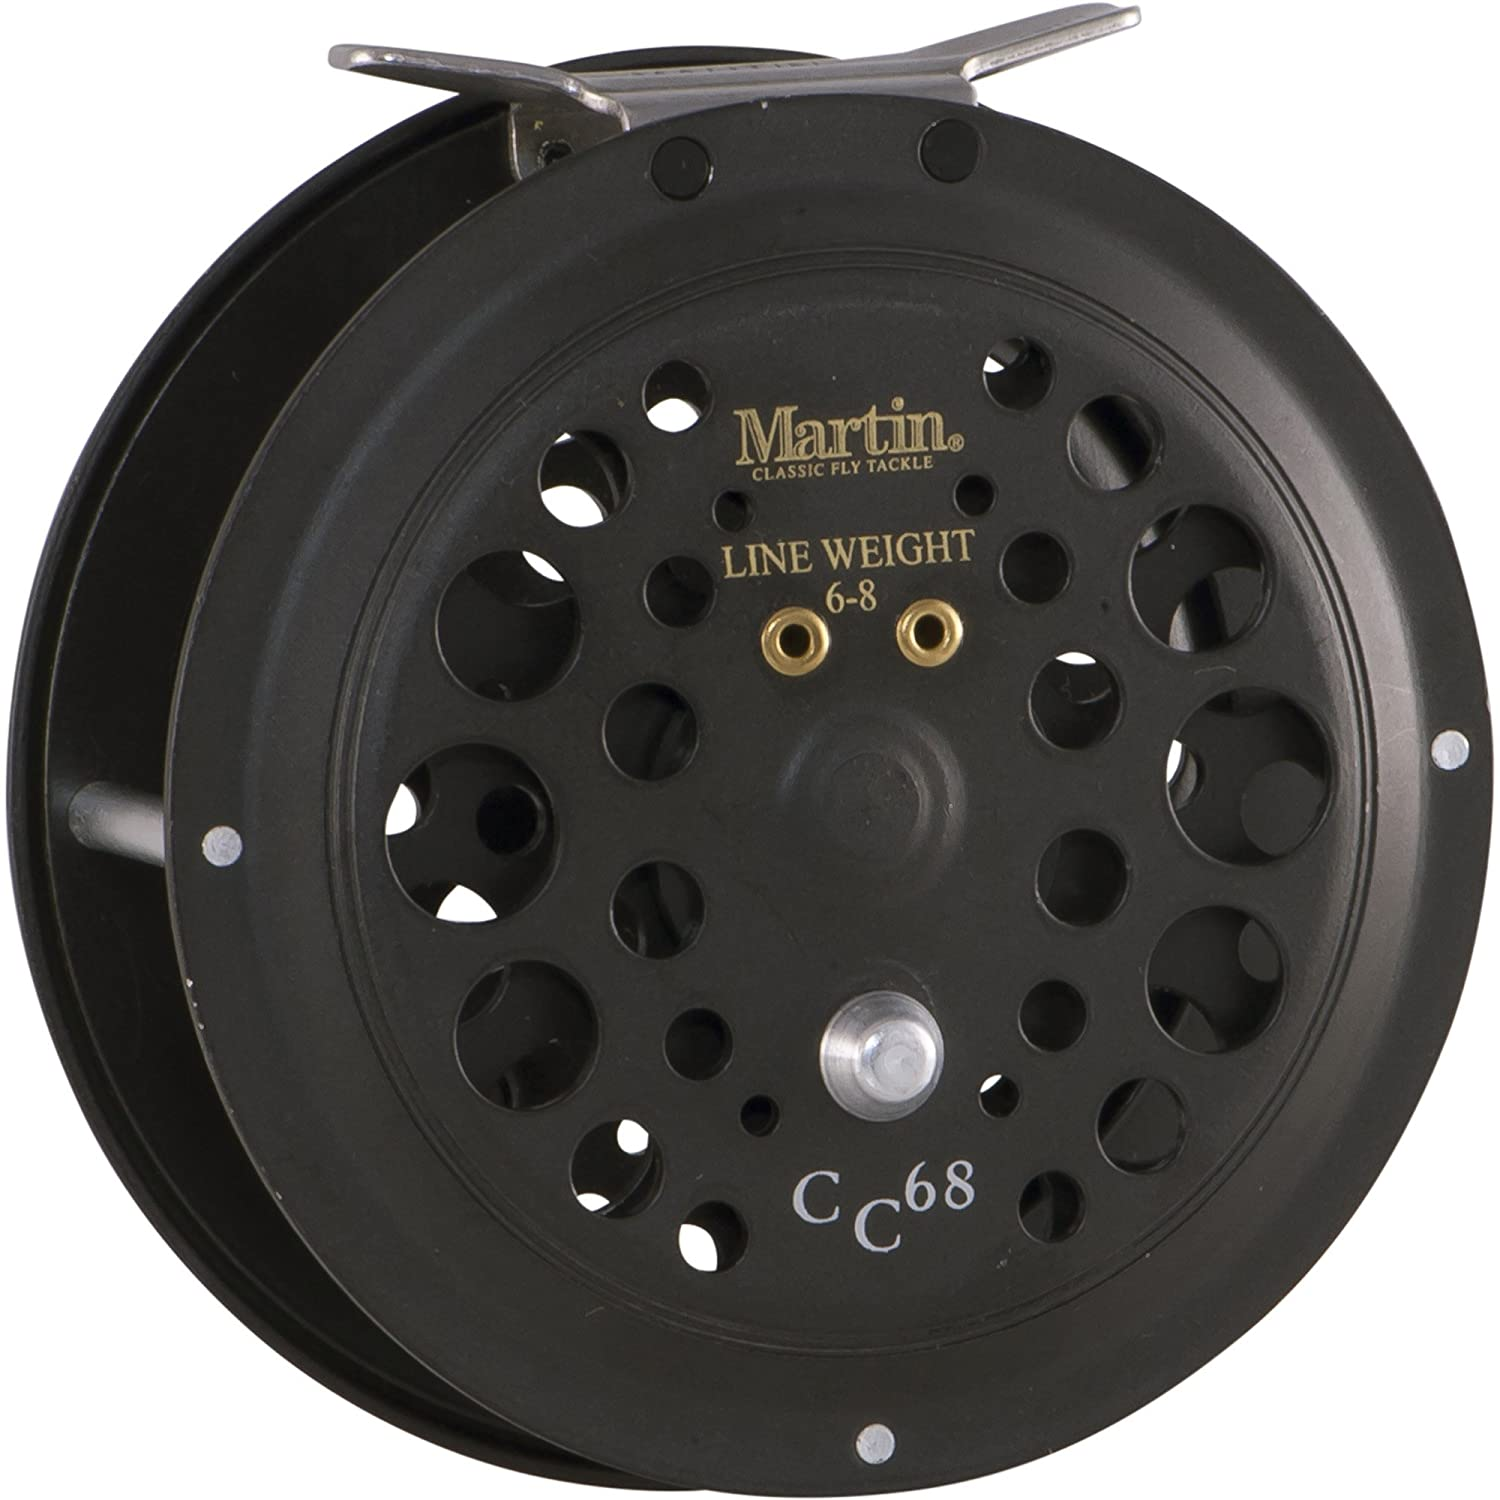 Martin Fly Fishing Caddis Creek Single Action Rim Control Fly Fishing Reel Size 5 6